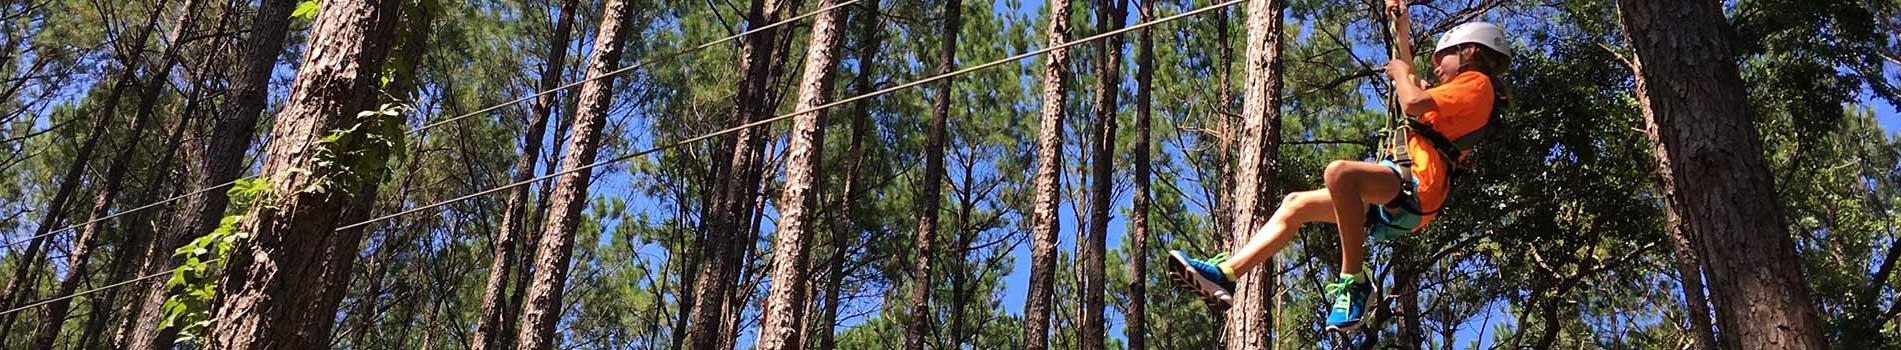 Backyard Zip Line Reviews kids zip koala course | charleston zip line adventures